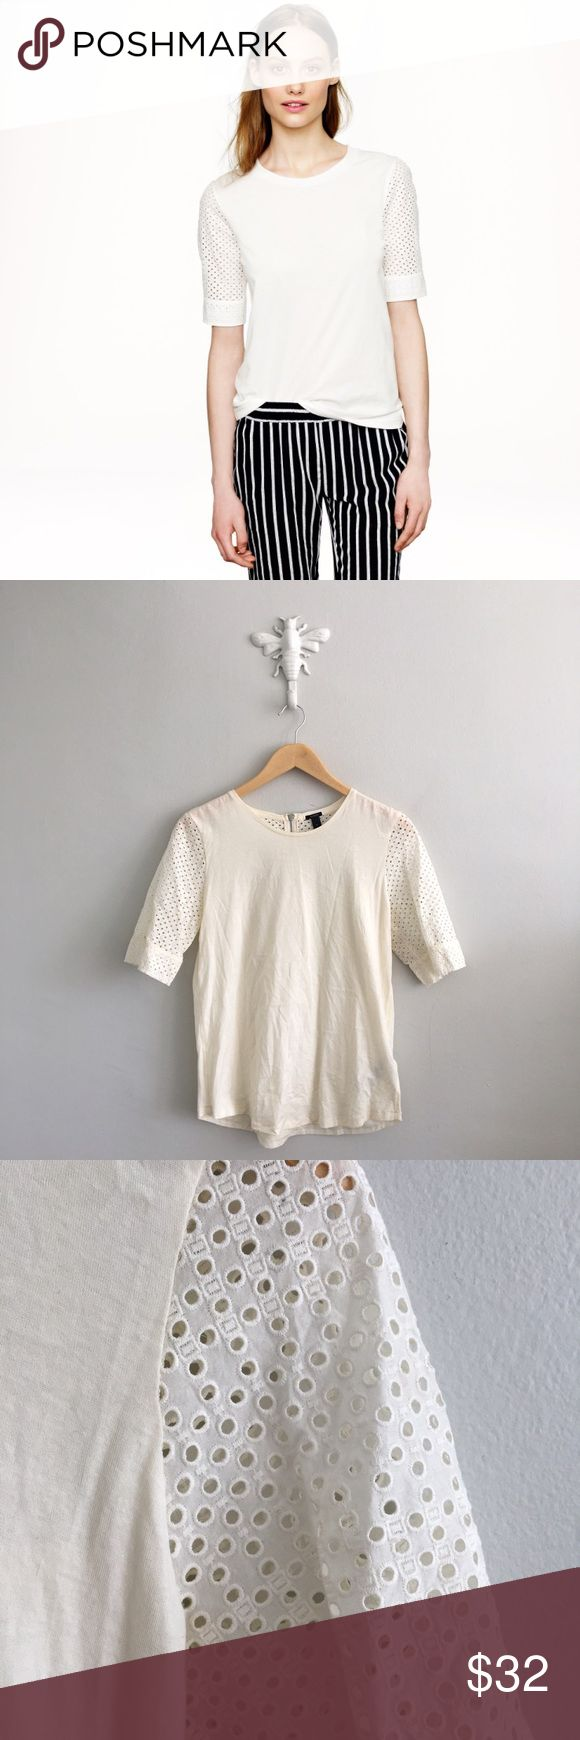 "J. Crew Womens Cream Eyelet Back Zip Up T-Shirt 100% cotton. Chest: 36"". Length: 25"". Gently pre-loved with no rips or stains. Please see all pictures for an accurate description of condition. J. Crew Tops Tees - Short Sleeve"